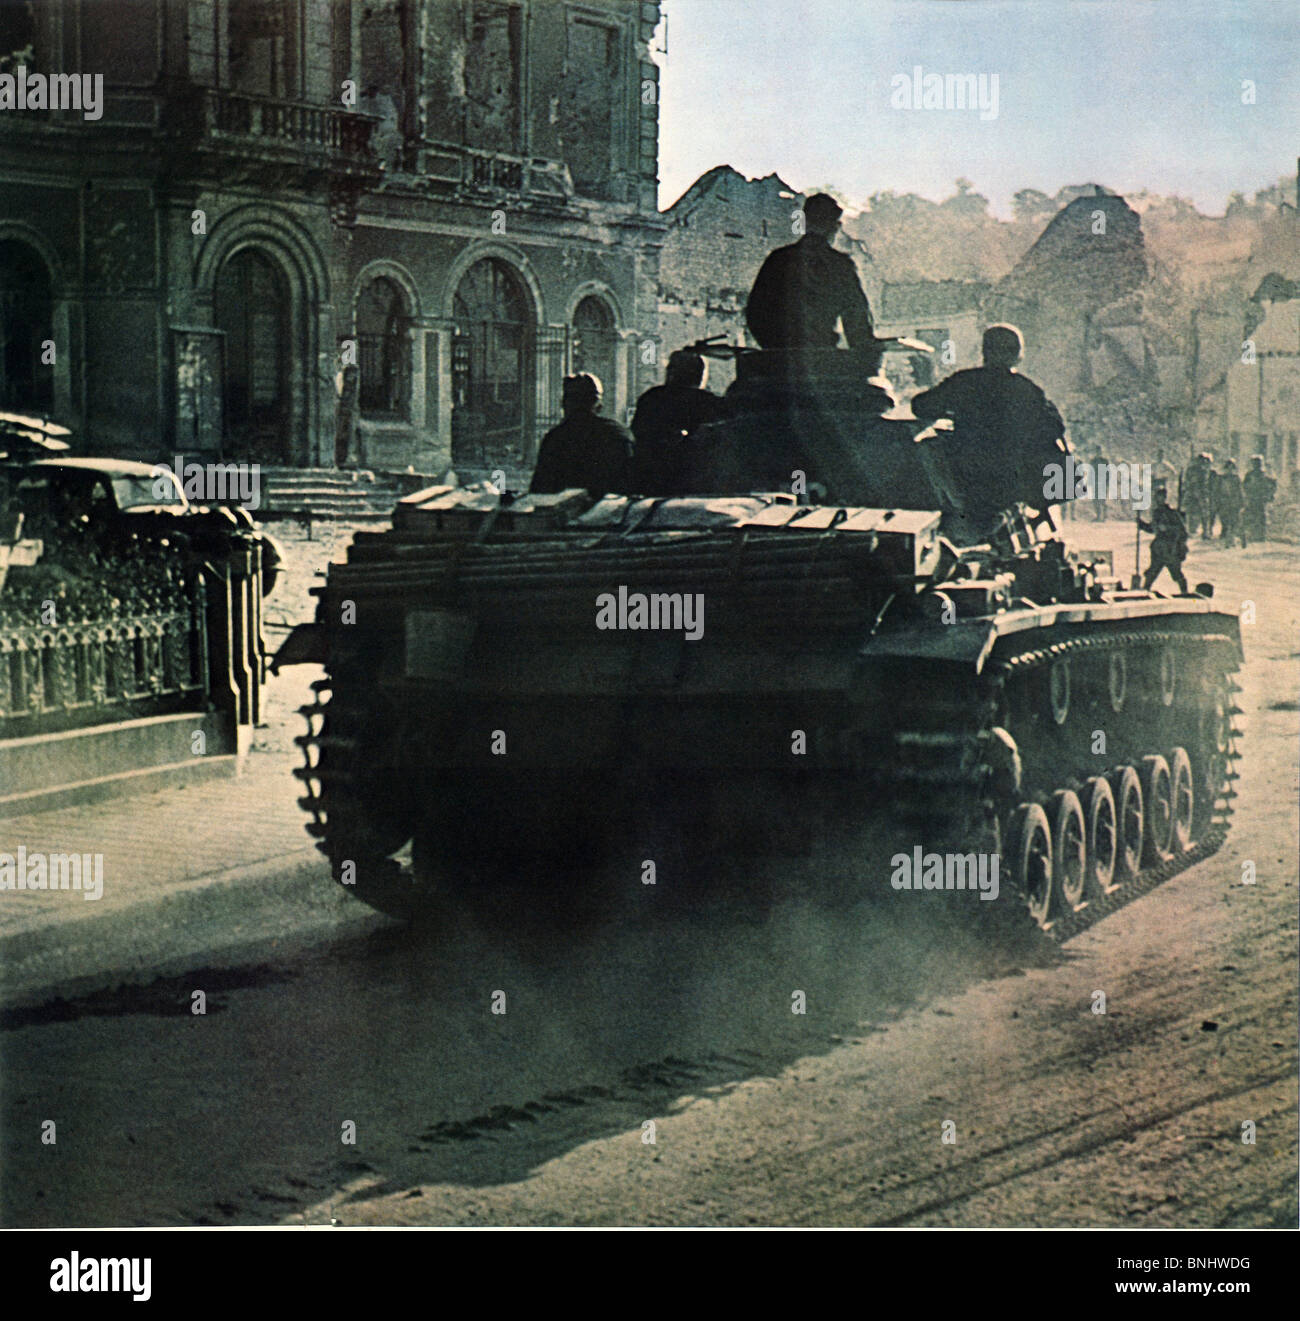 World War II German Panther tank Normandy France fighting June 1944 Second World War WW2 war military army history - Stock Image